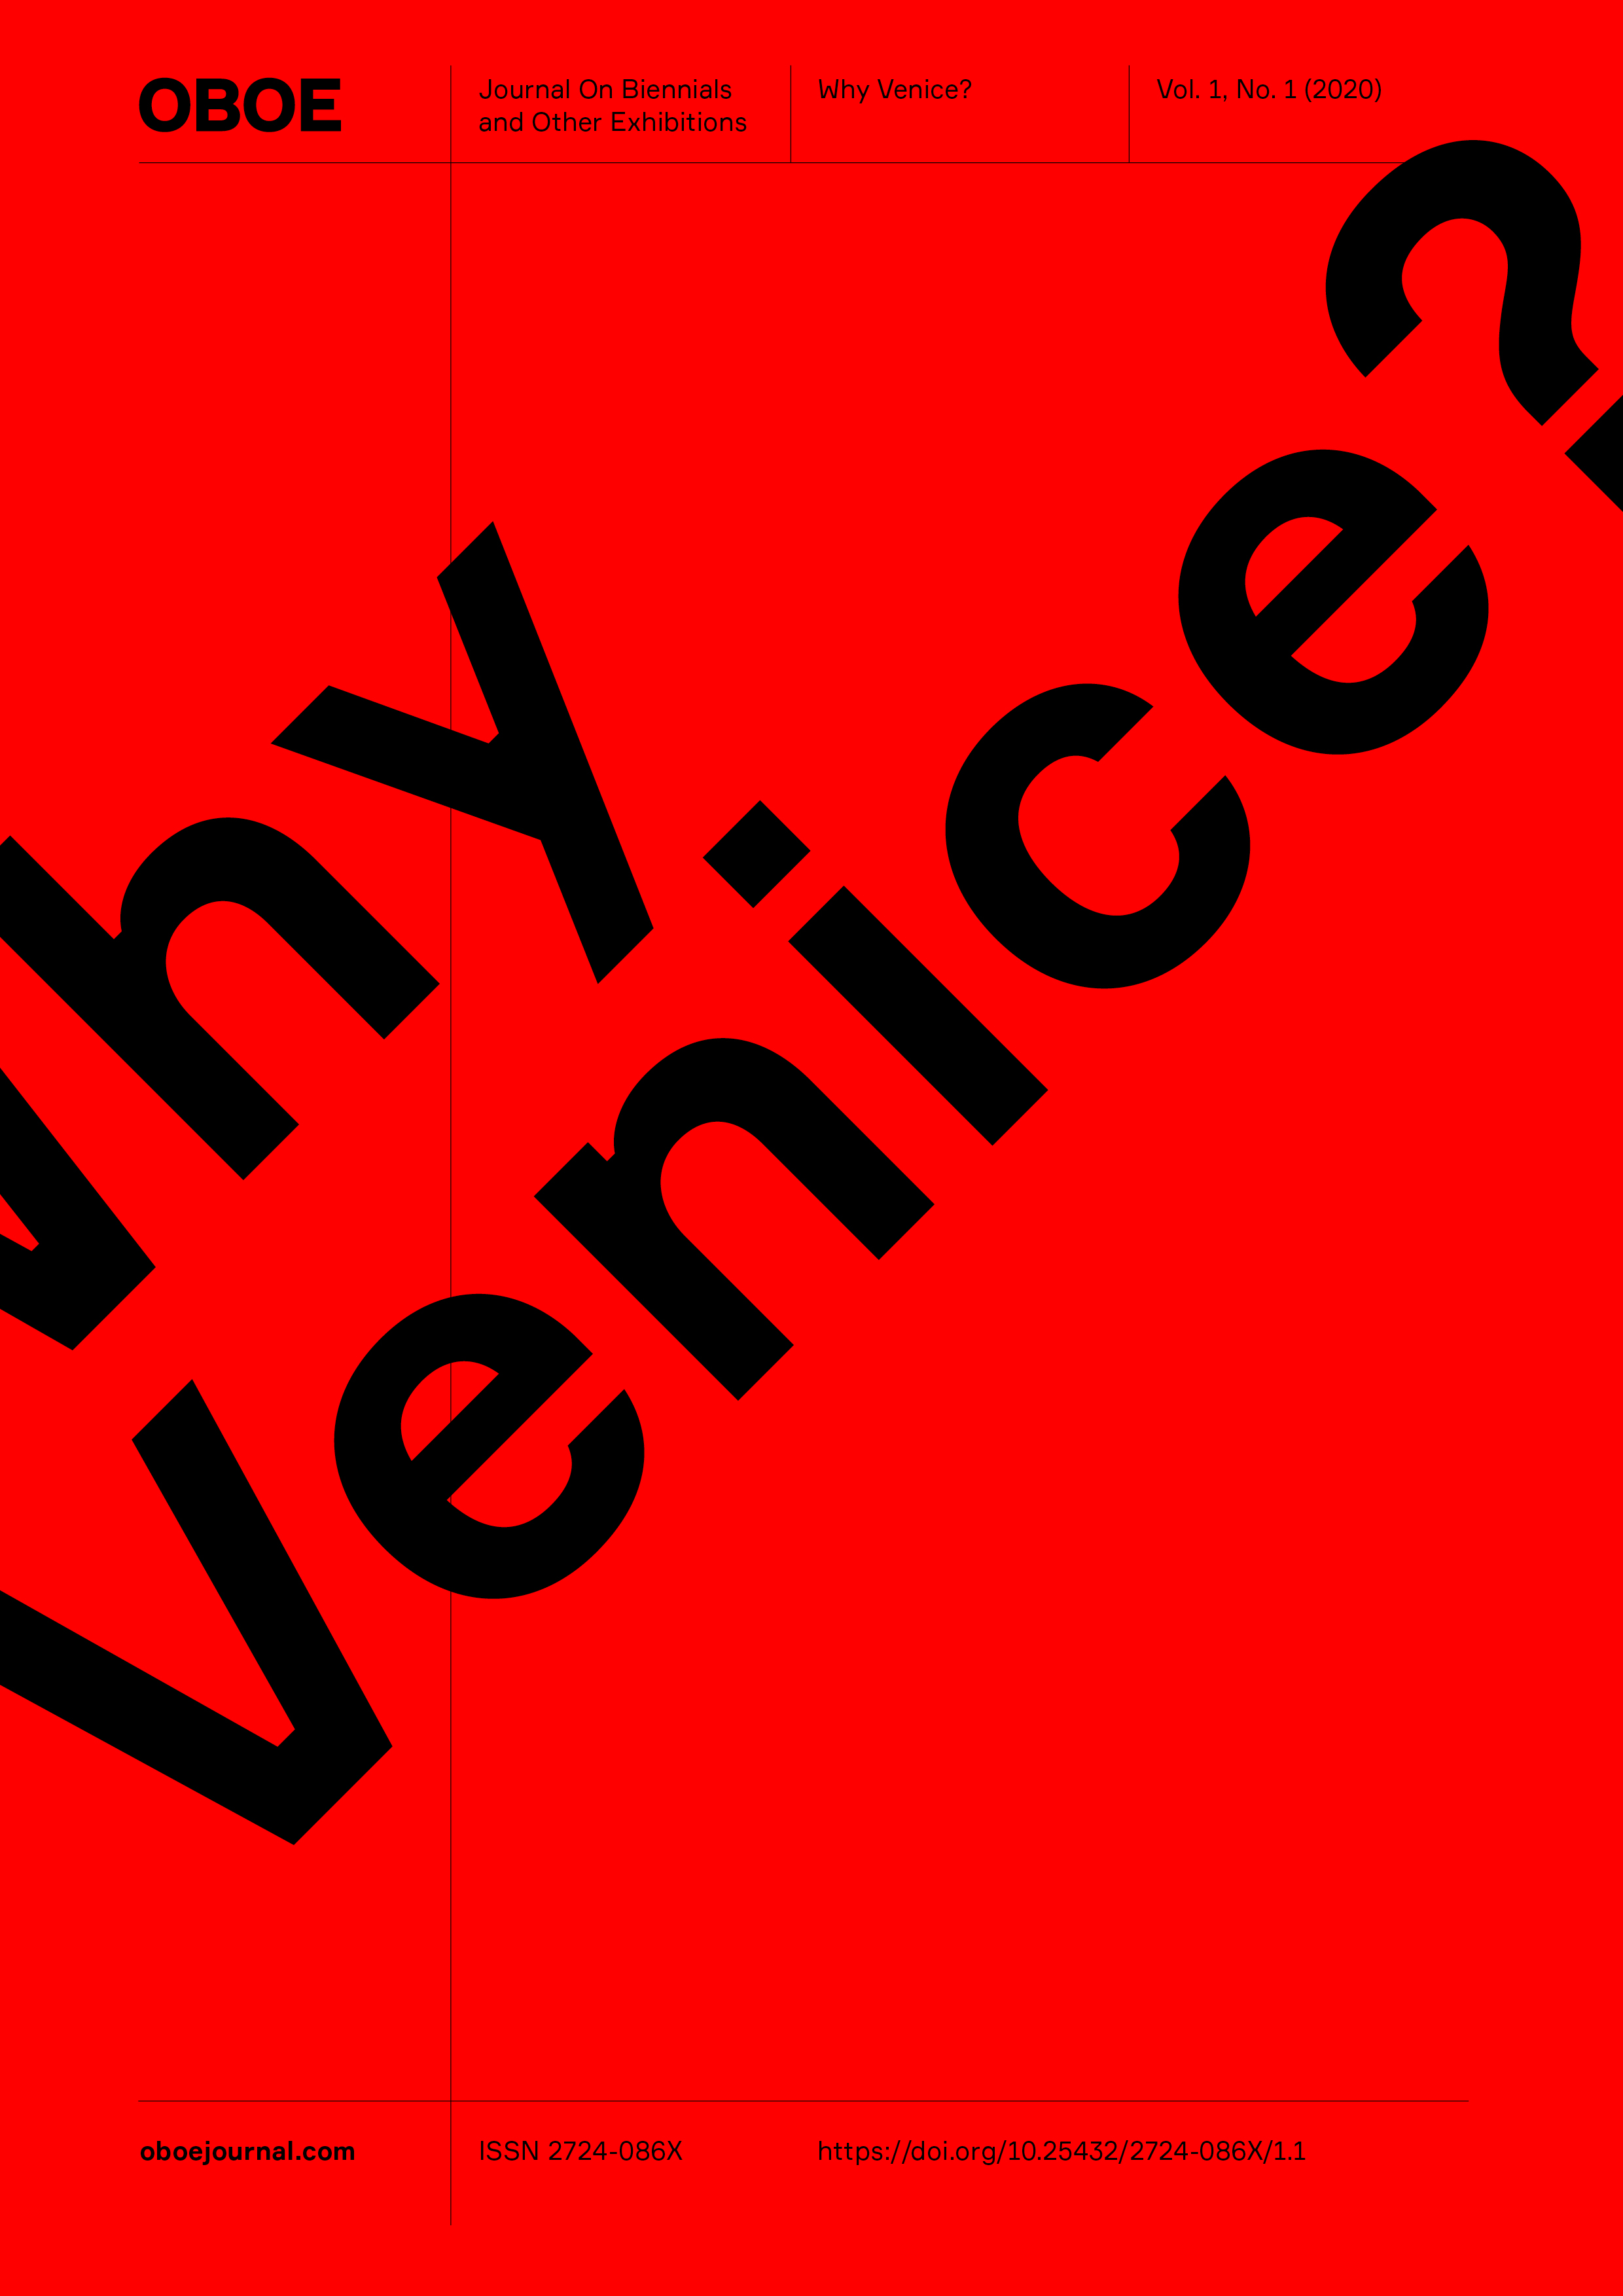 OBOE Journal - Why Venice?